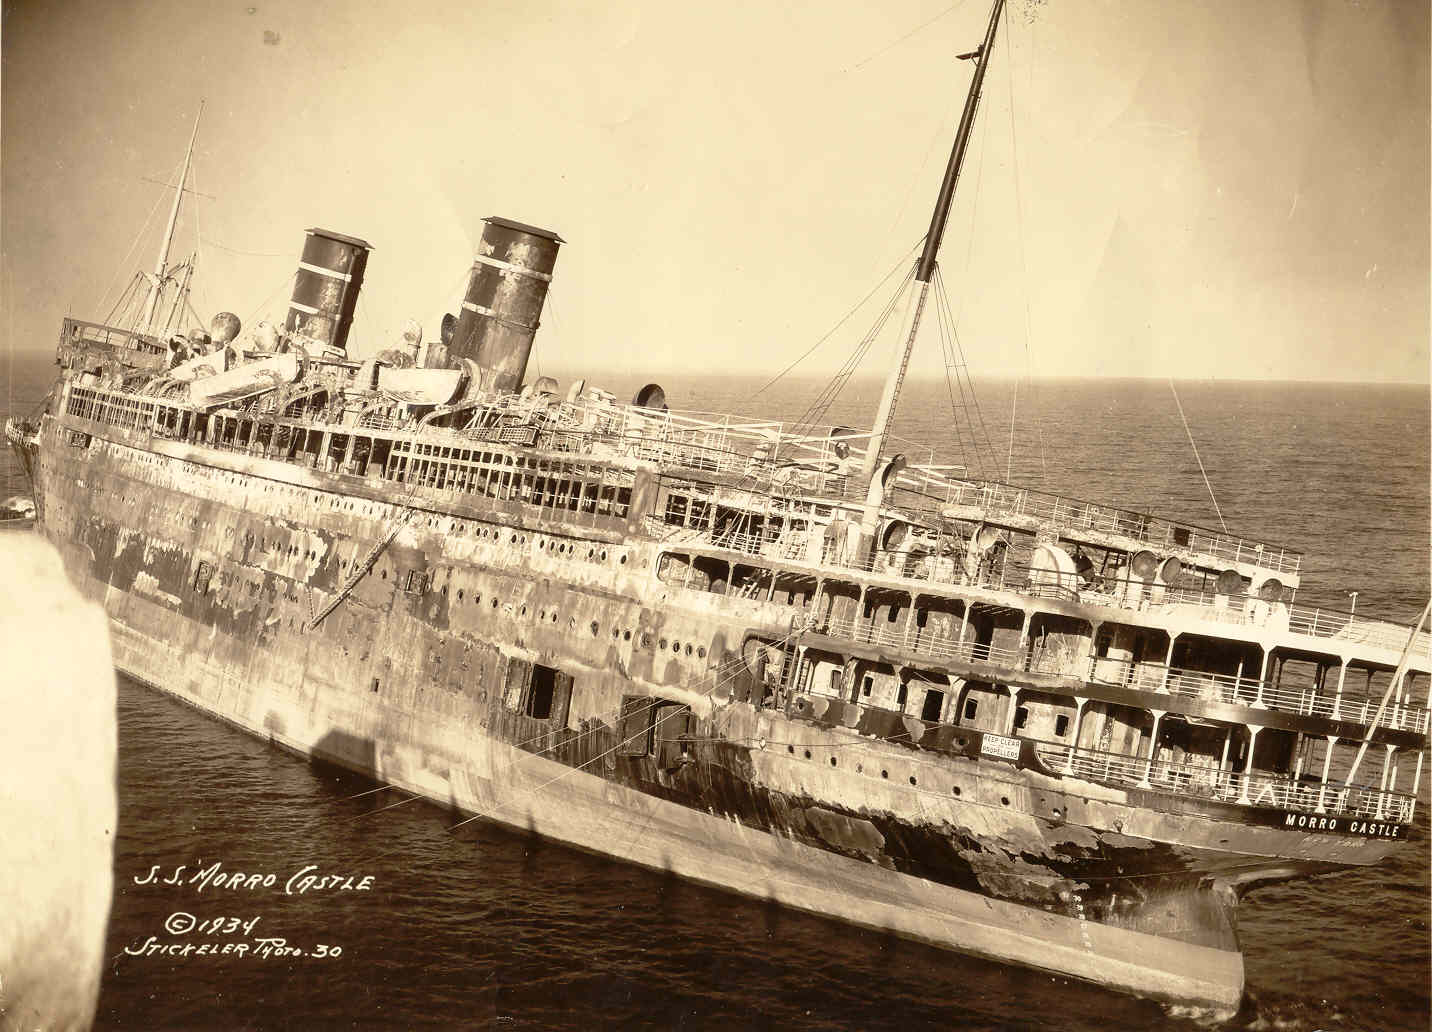 Steamship Morro Castle Disaster